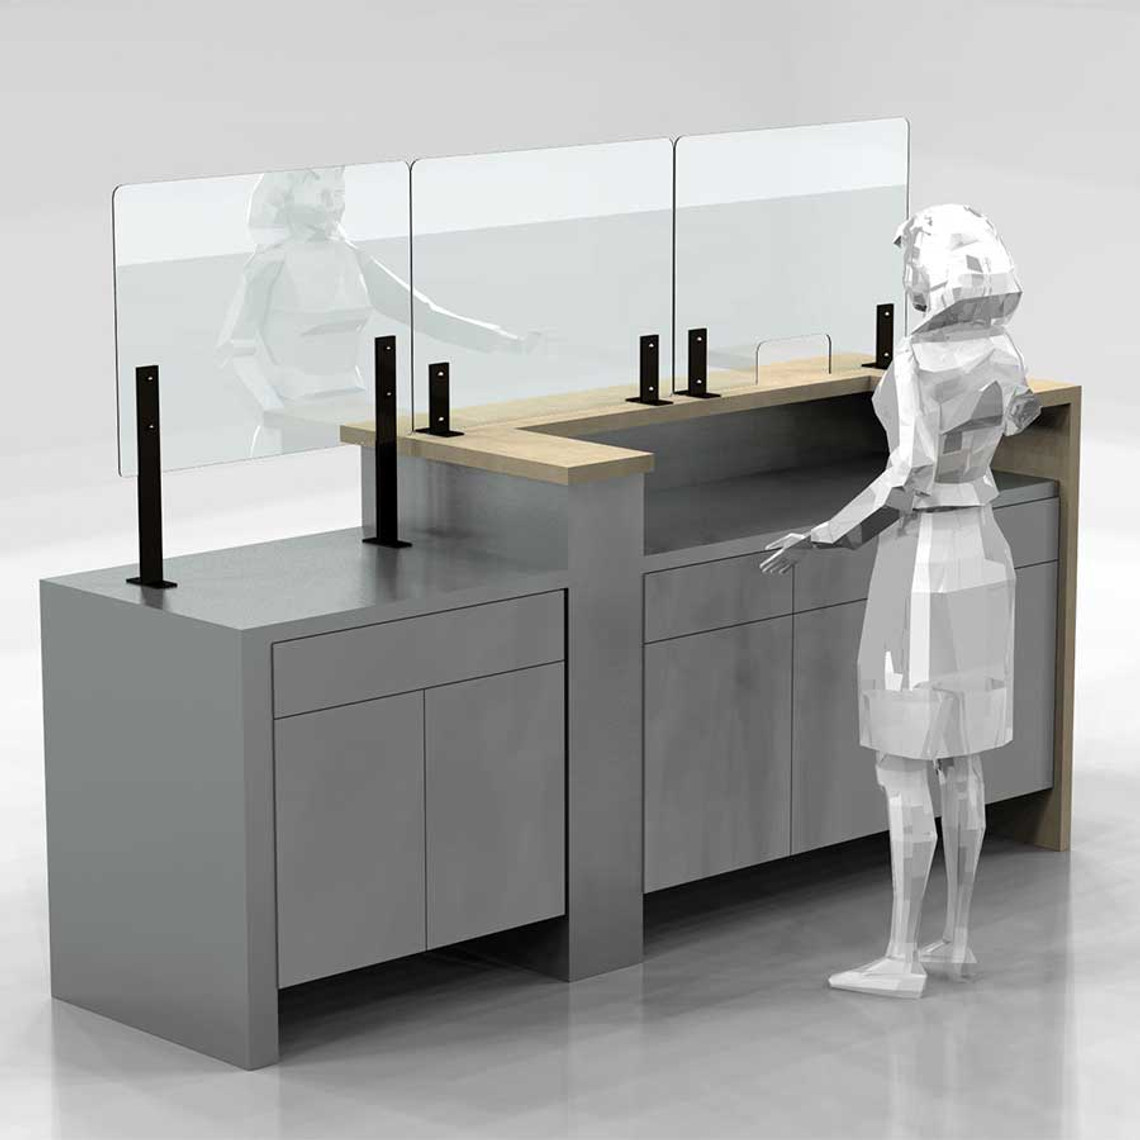 Three PlexiShield sneeze guards on steel legs attached to the Point of Sale counter. Ideal for creating a safe barrier between the customer and the server.